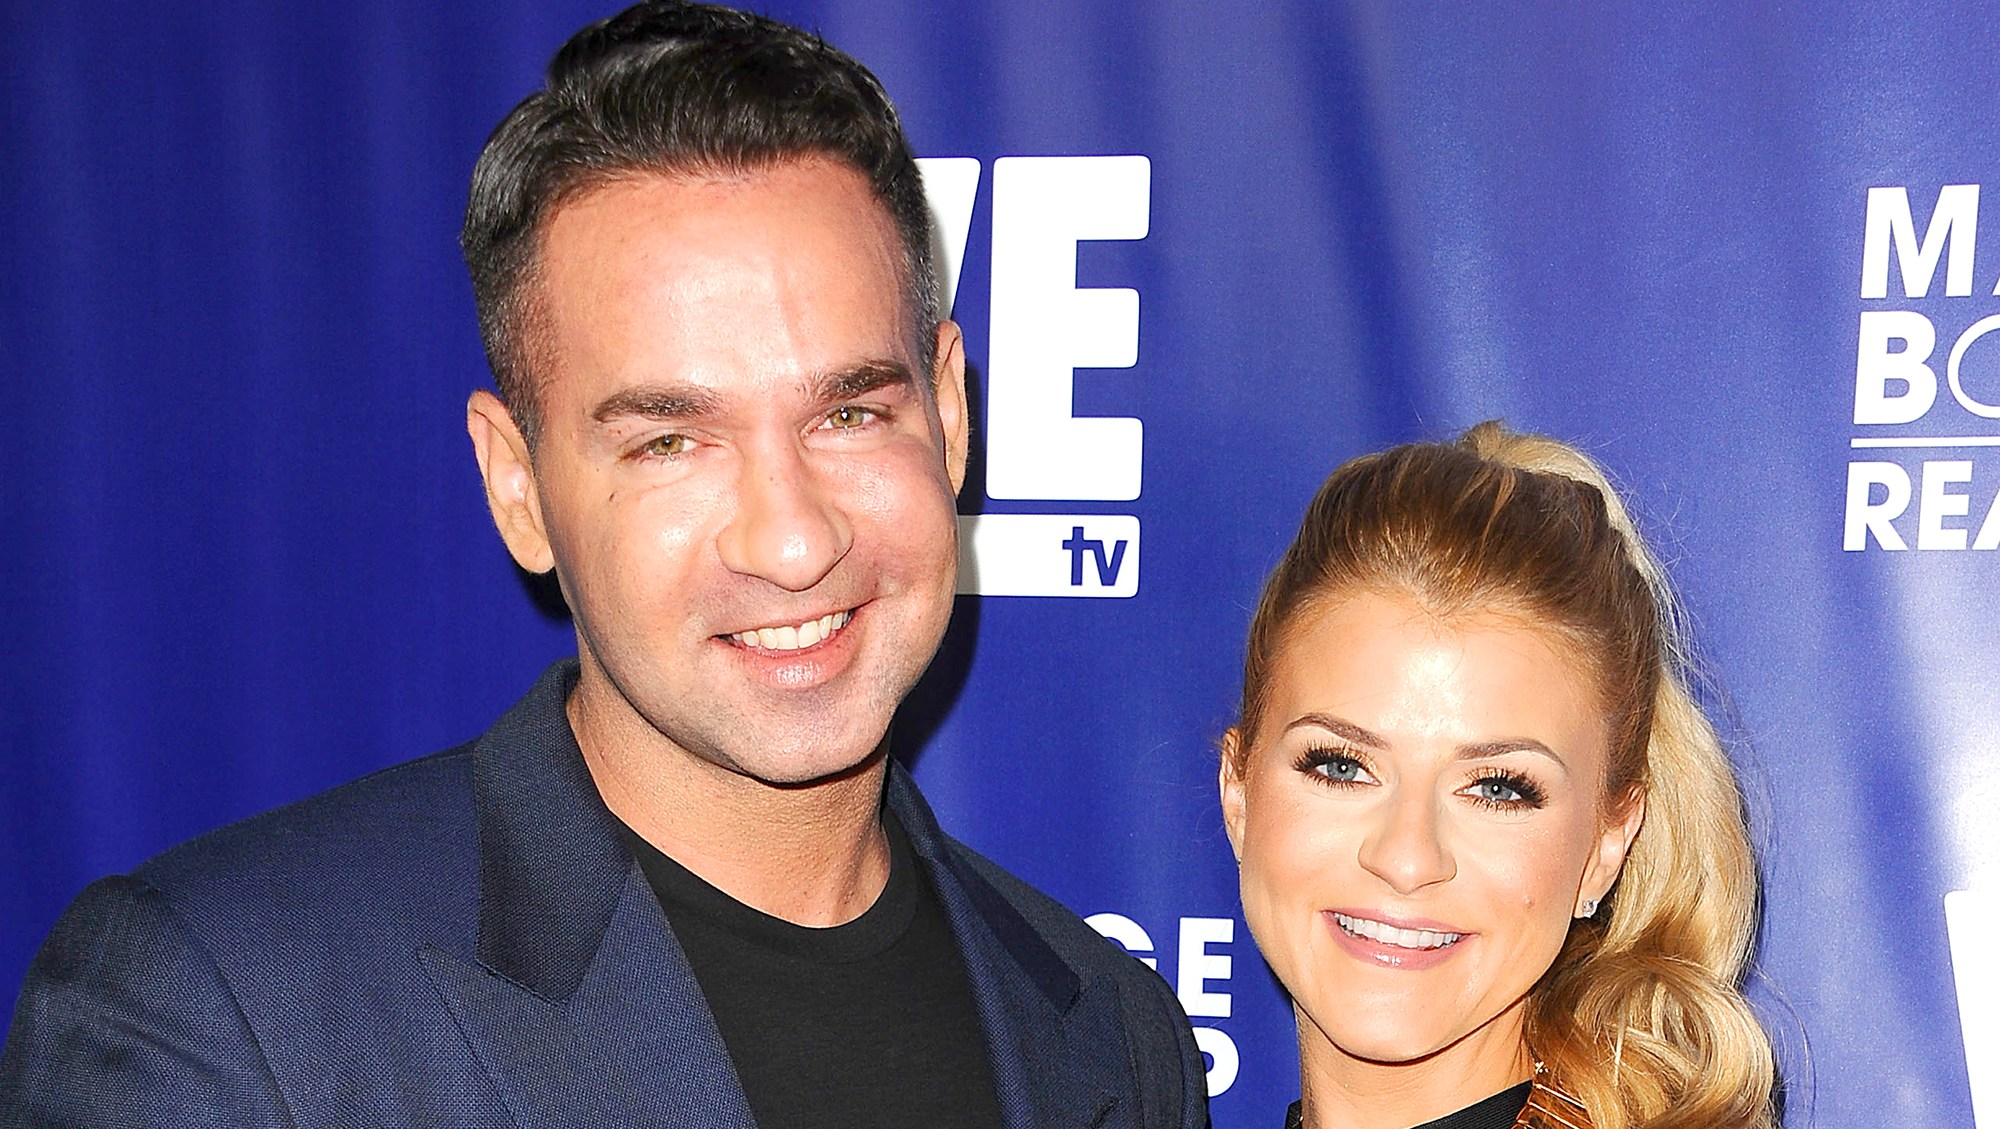 Mike 'The Situation' Sorrentino's Wife Lauren Pesce Speaks Out After He Surrenders to Prison